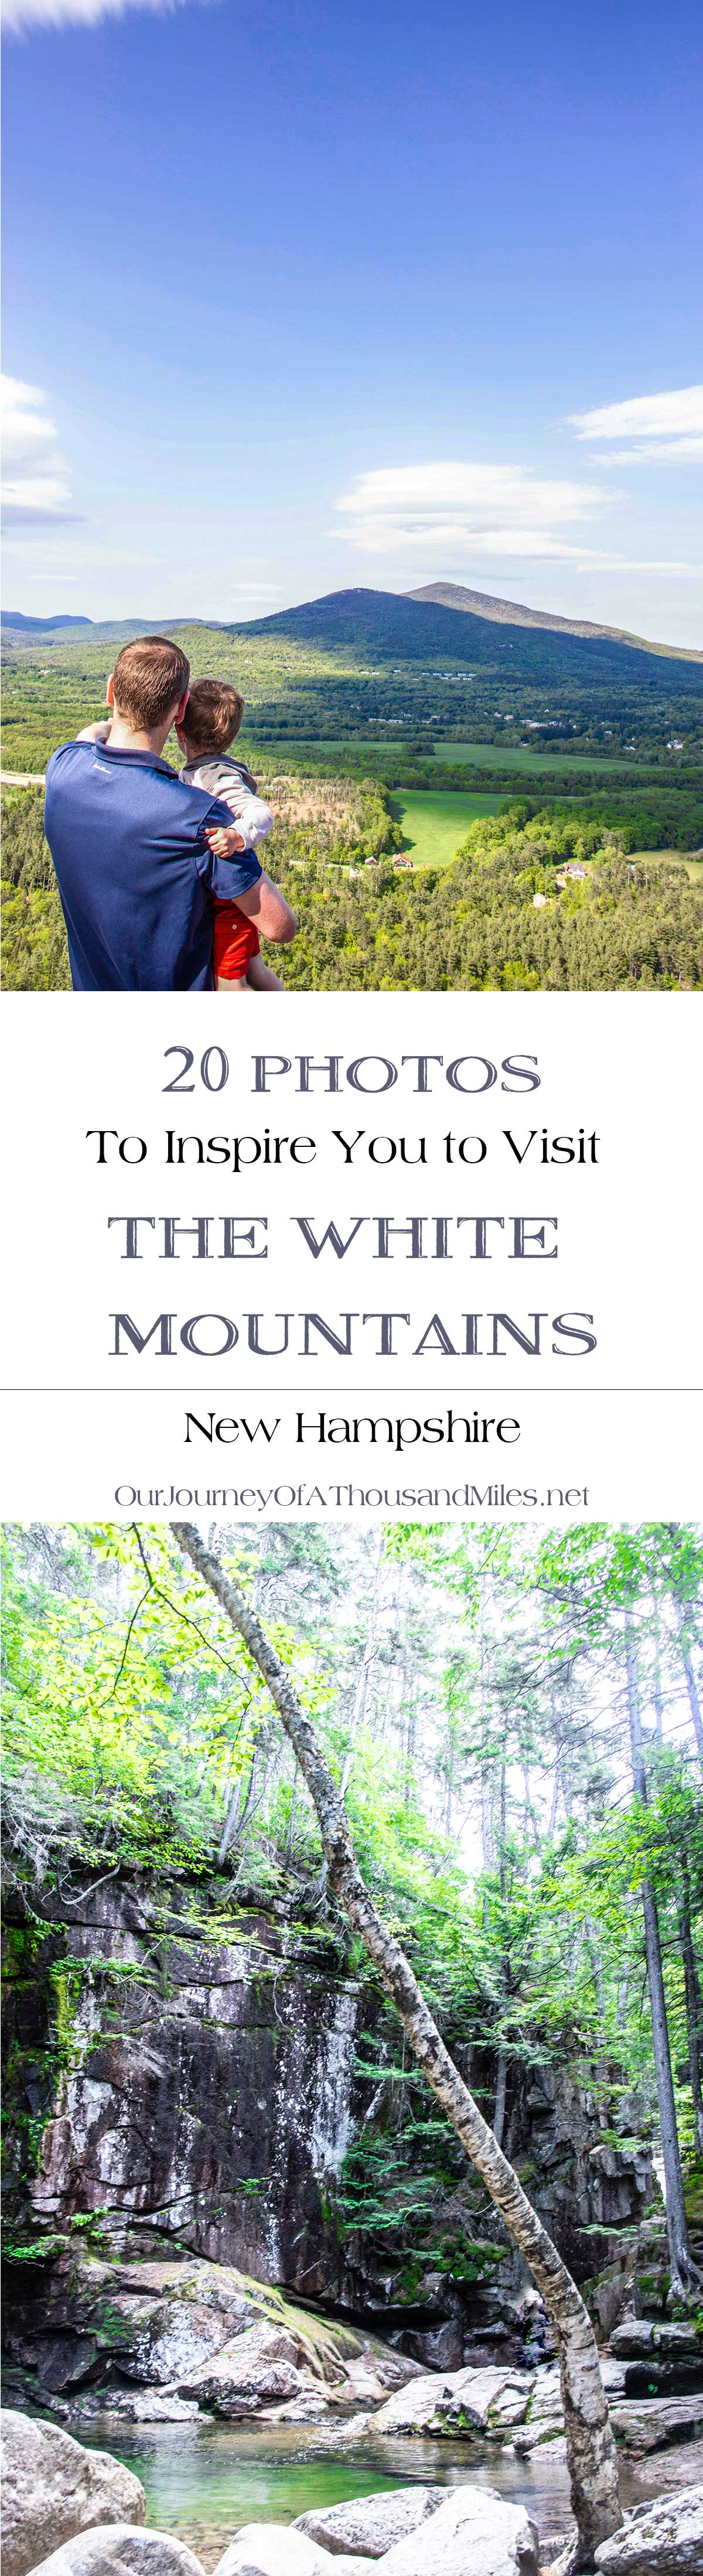 20-Photos-To-Inspire-You-To-Visit-The-White-Mountains-in-New-Hampshire